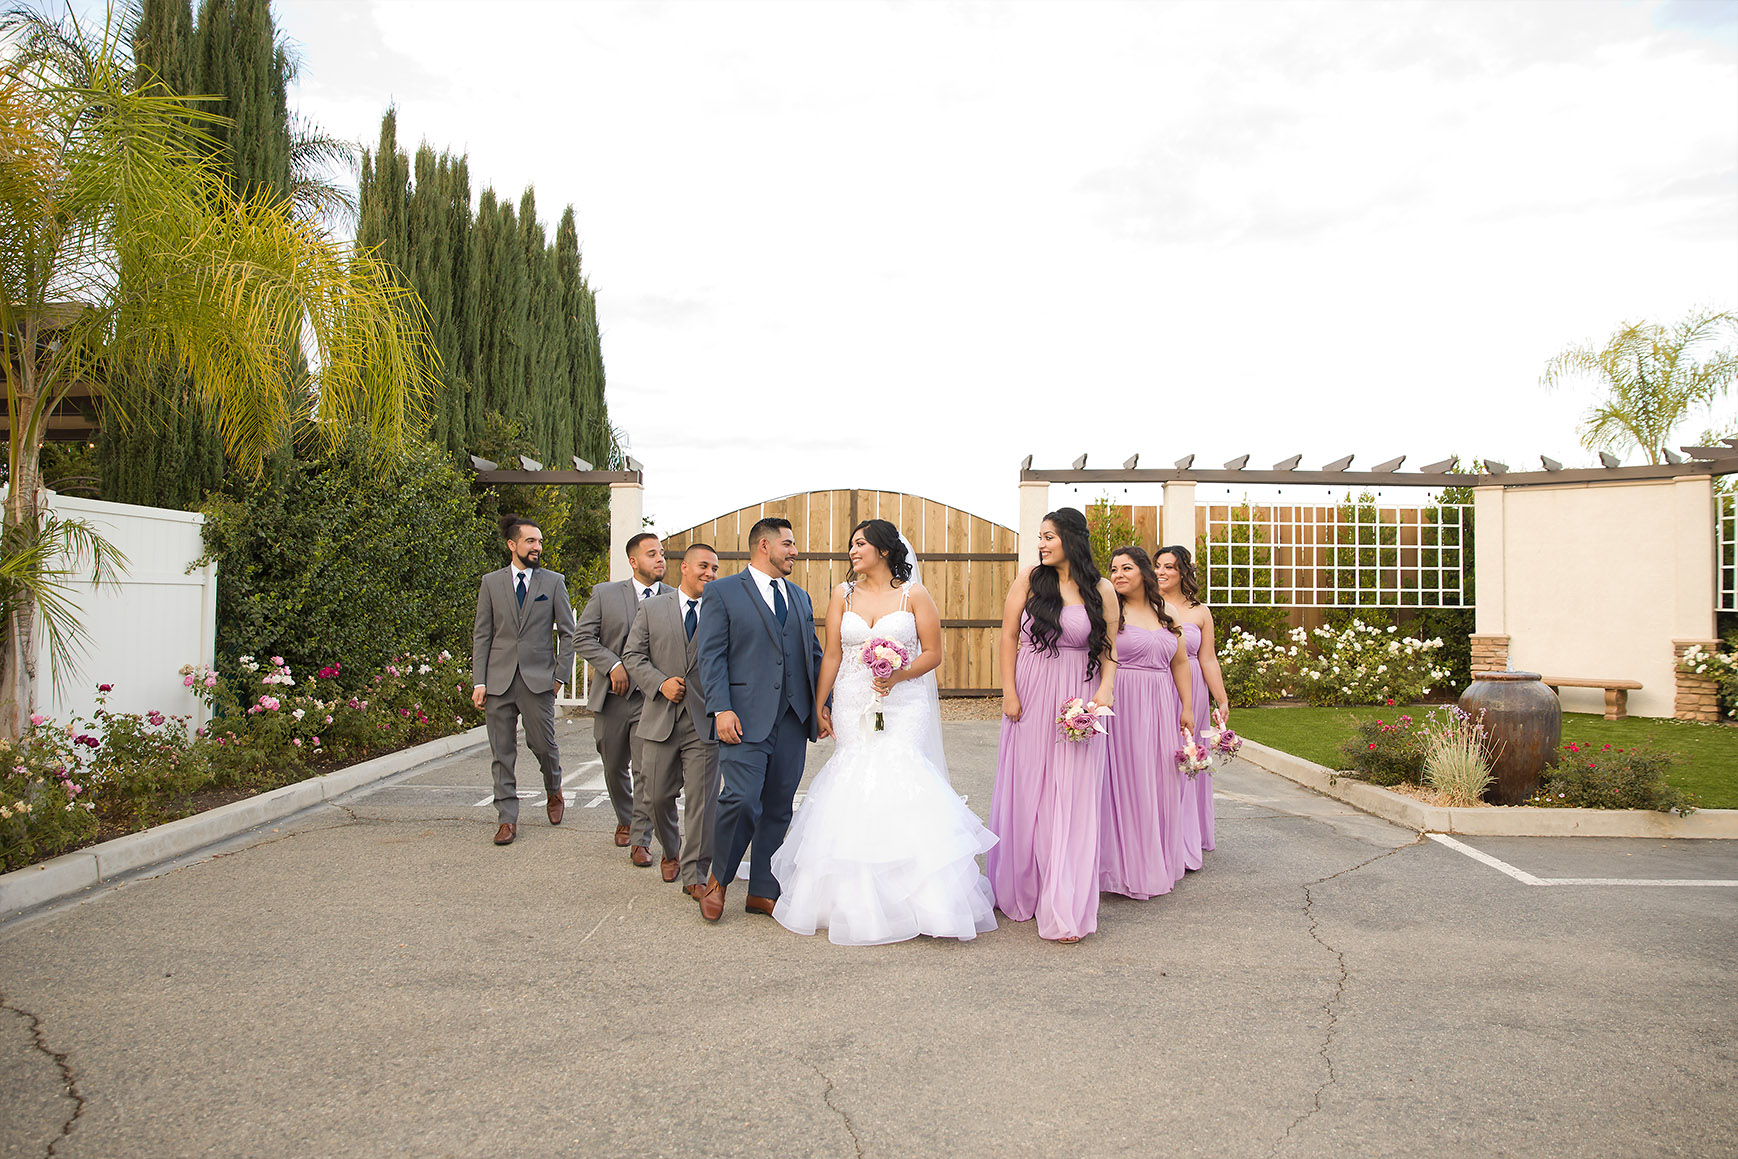 Bridal party in the garden - Fresno - Fresno, California - Frenso County - Wedgewood Weddngs